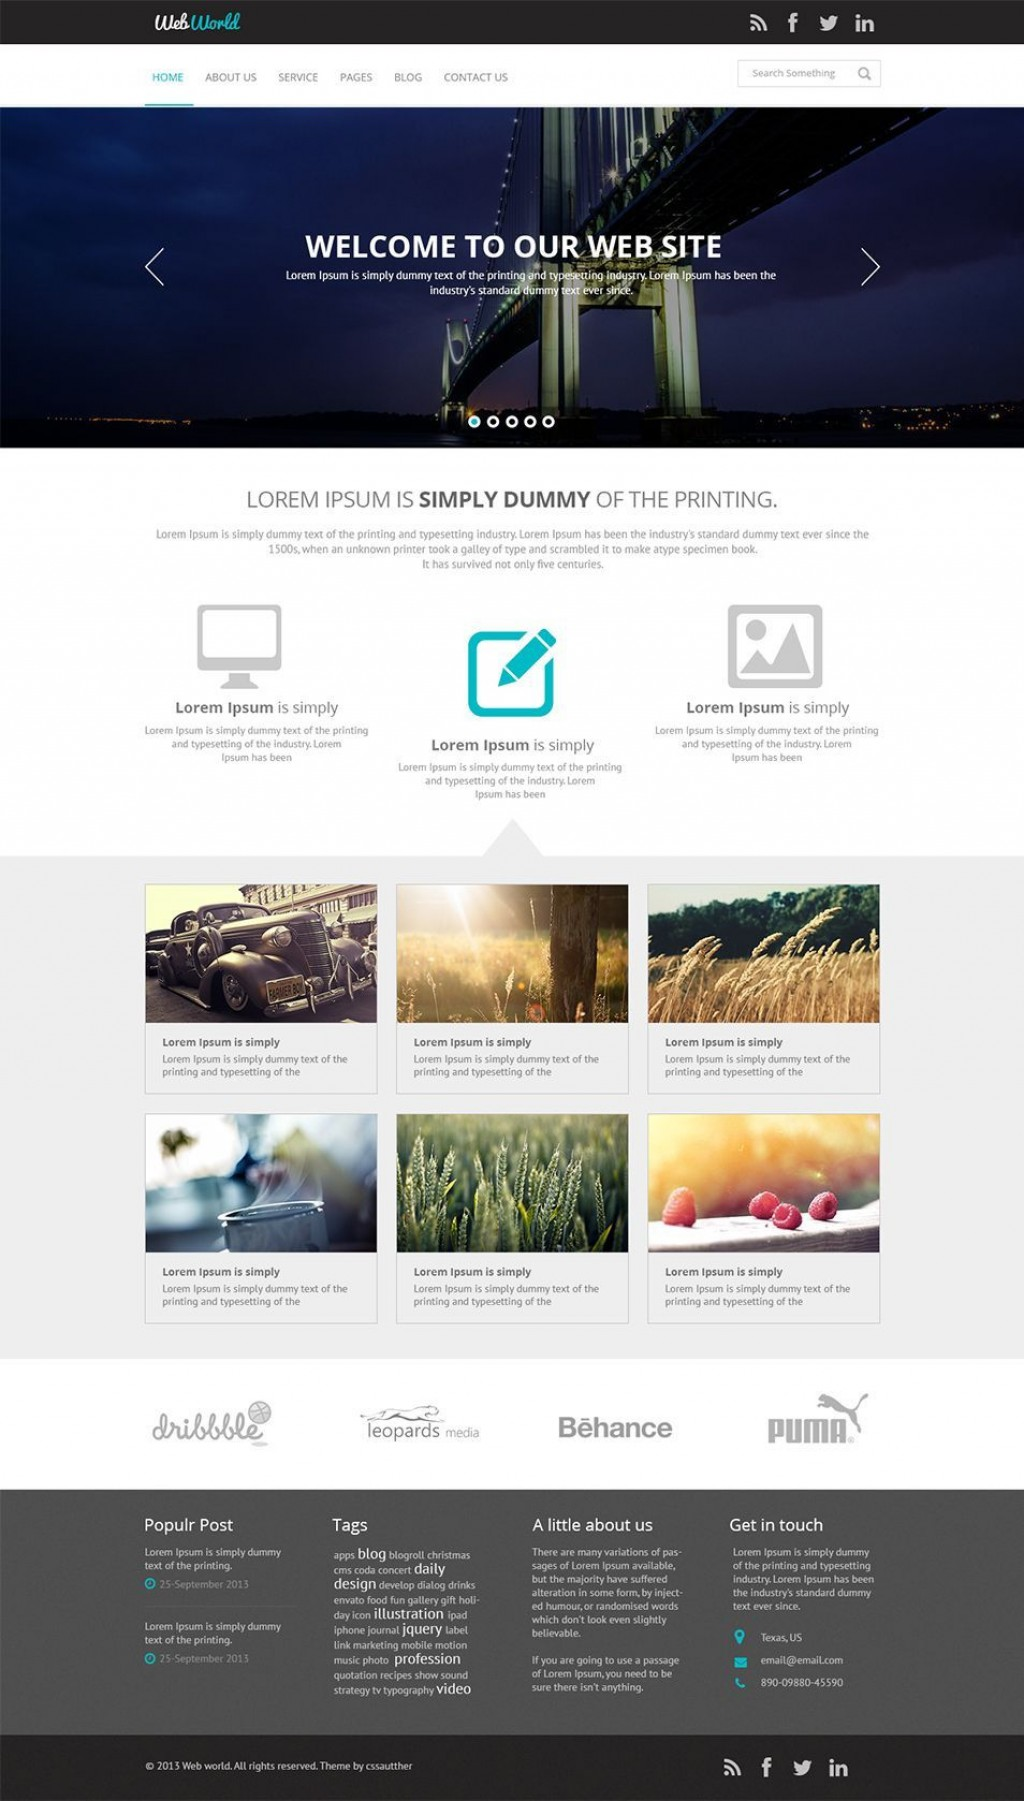 004 Sensational Free Busines Website Template High Definition  Templates Wordpres For Small Dreamweaver Download Html5 With Css3 JqueryLarge